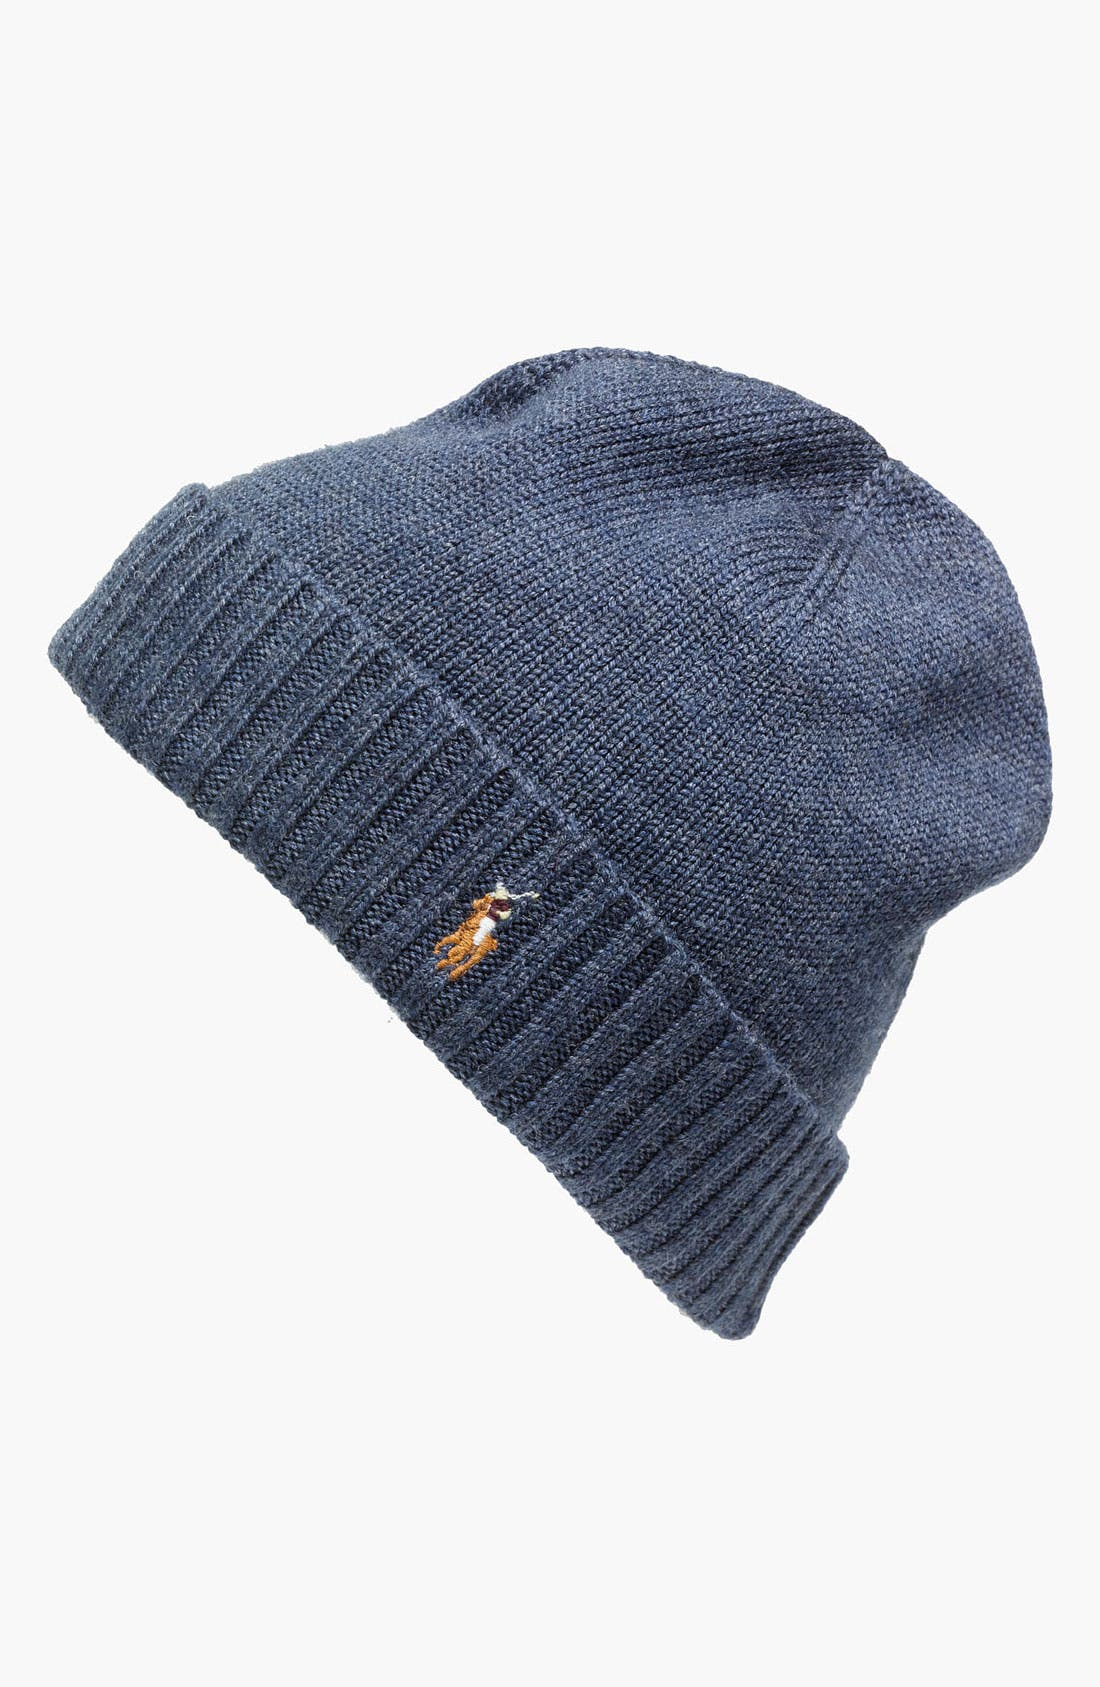 Main Image - Polo Ralph Lauren 'Classic Lux' Merino Wool Knit Cap